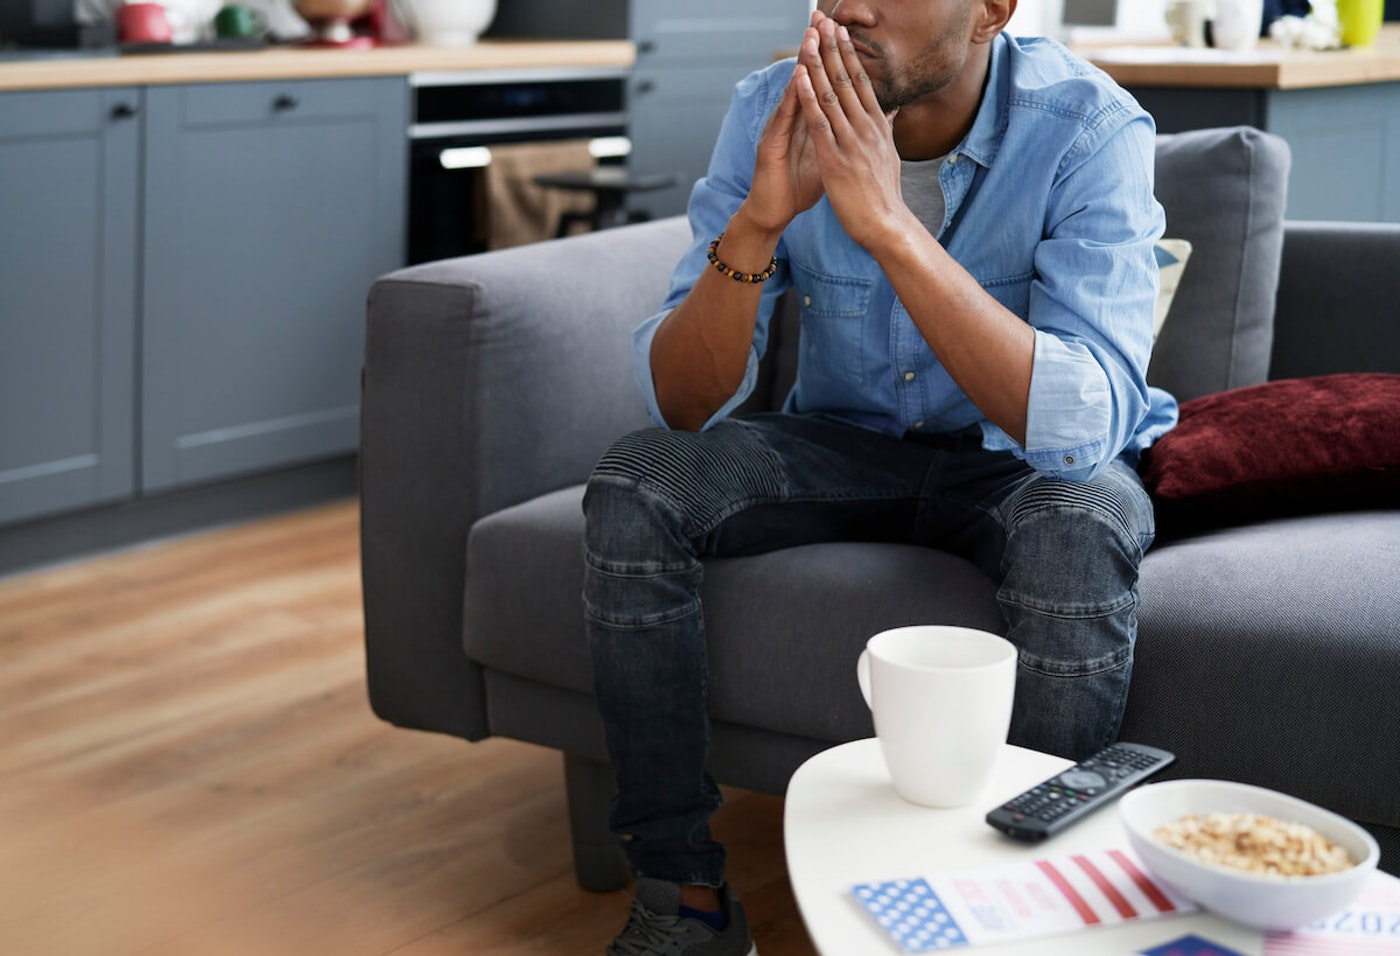 Tips for dealing with election stress. Image via Shutterstock